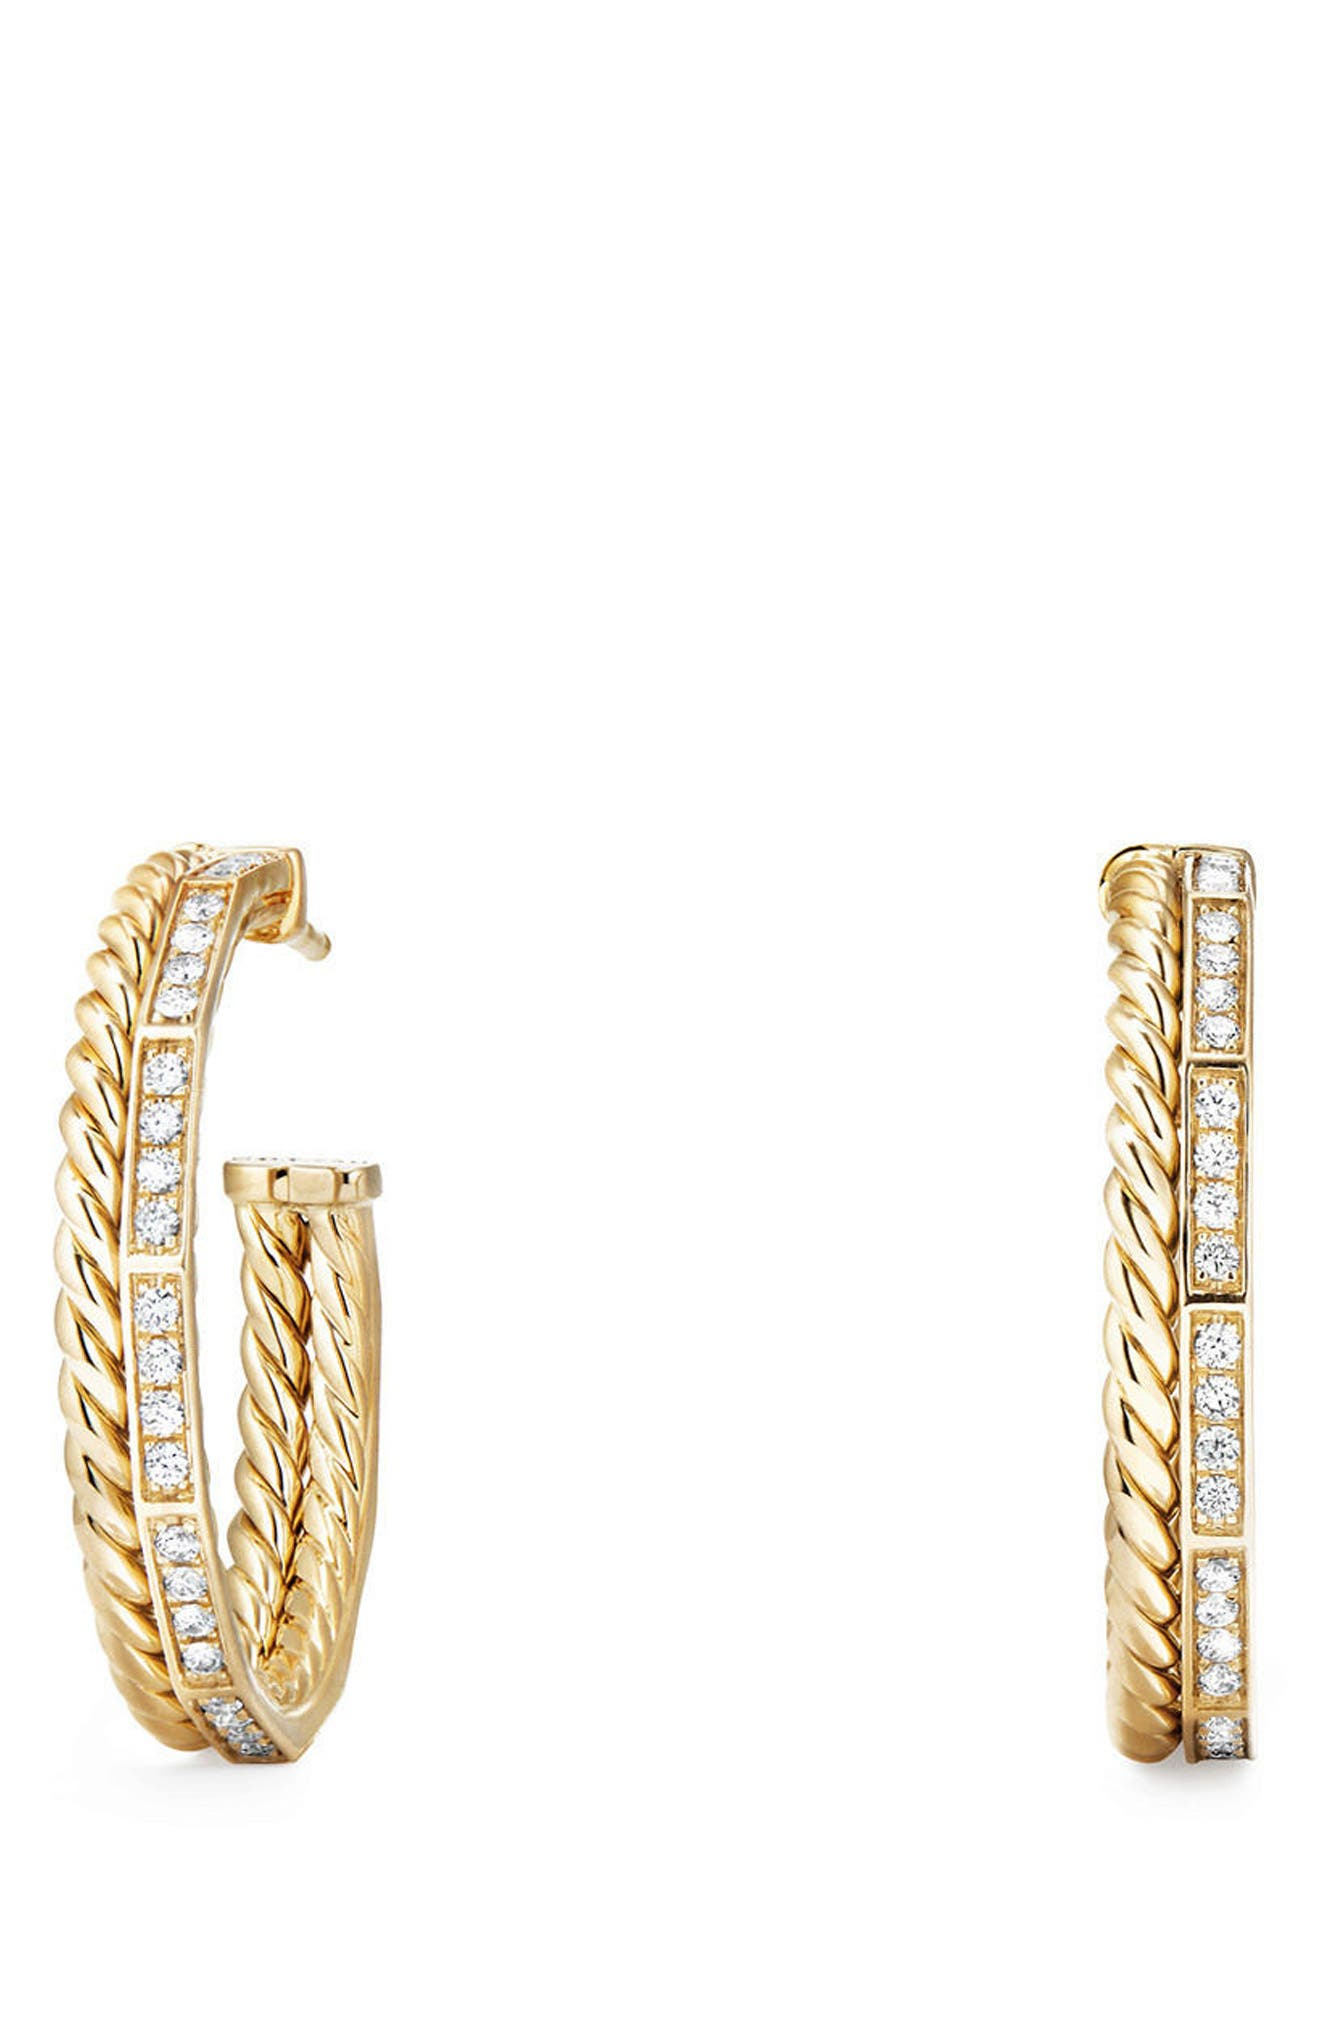 Stax Hoop Earrings with Diamonds in 18k Gold,                             Main thumbnail 1, color,                             YELLOW GOLD